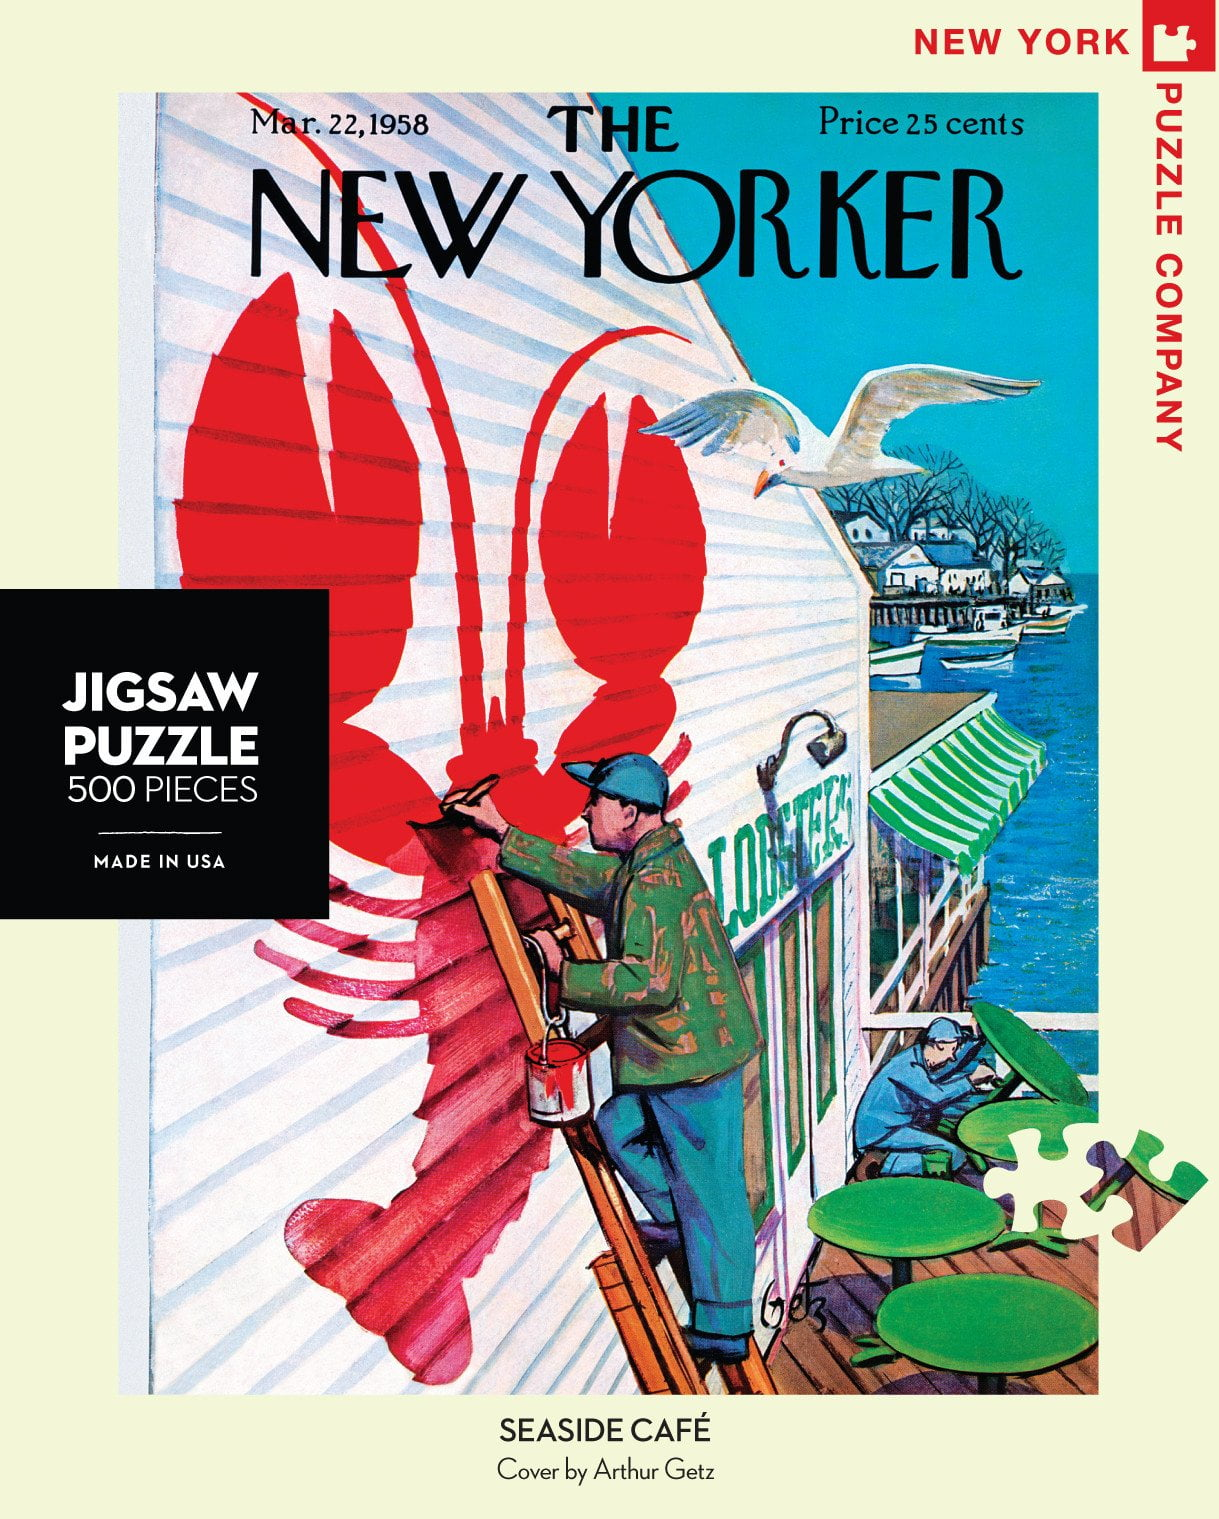 New York And Company Credit Card Payment >> THE NEW YORKER - SEASIDE CAFE 500 PIECE PUZZLE